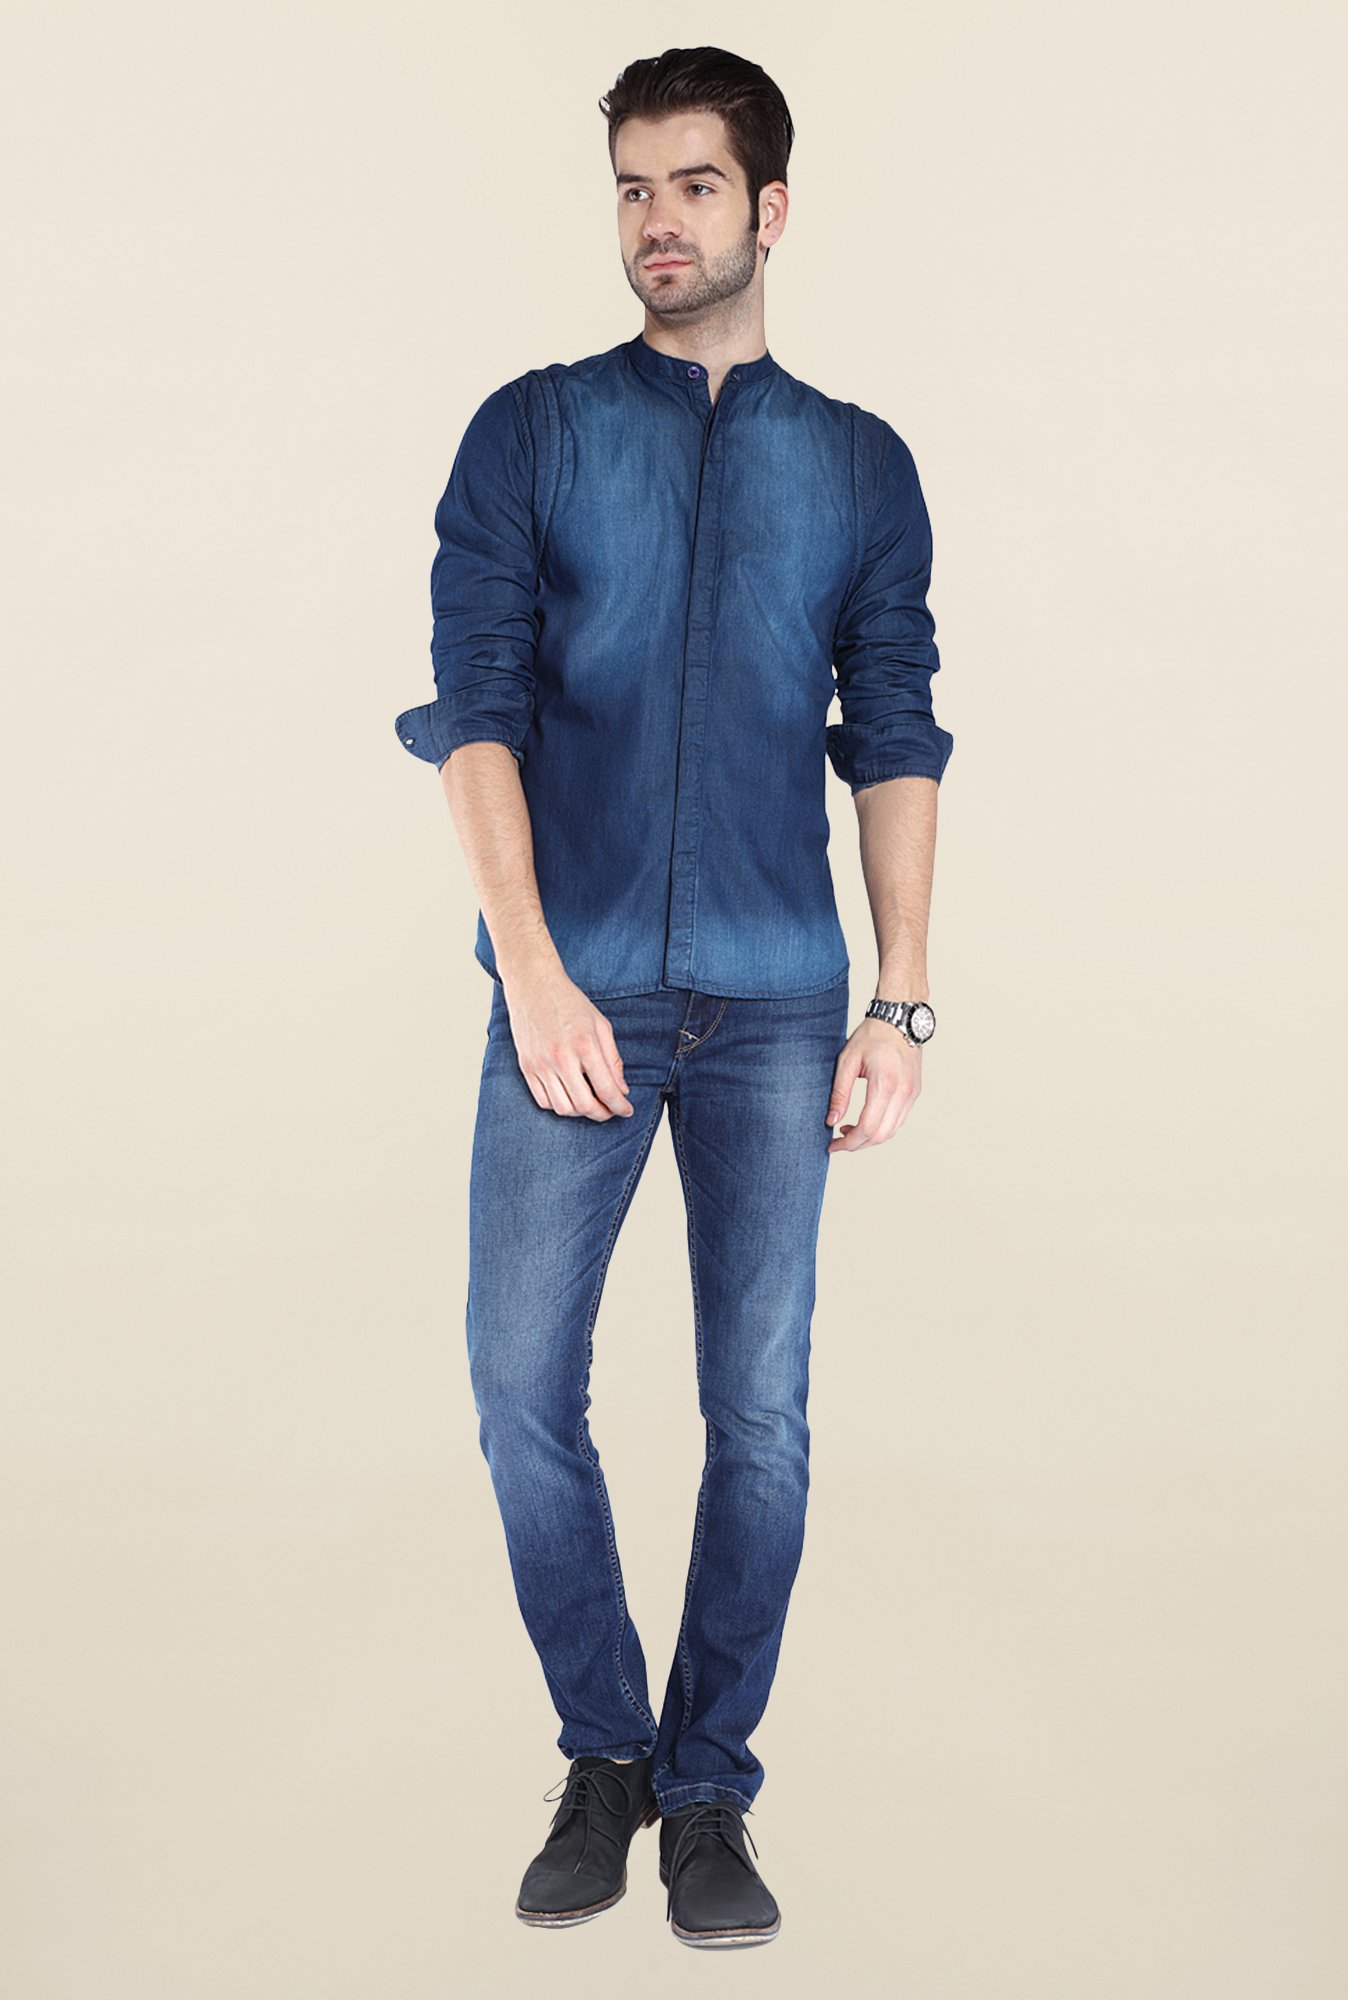 Parx Dark Blue Denim Shirt